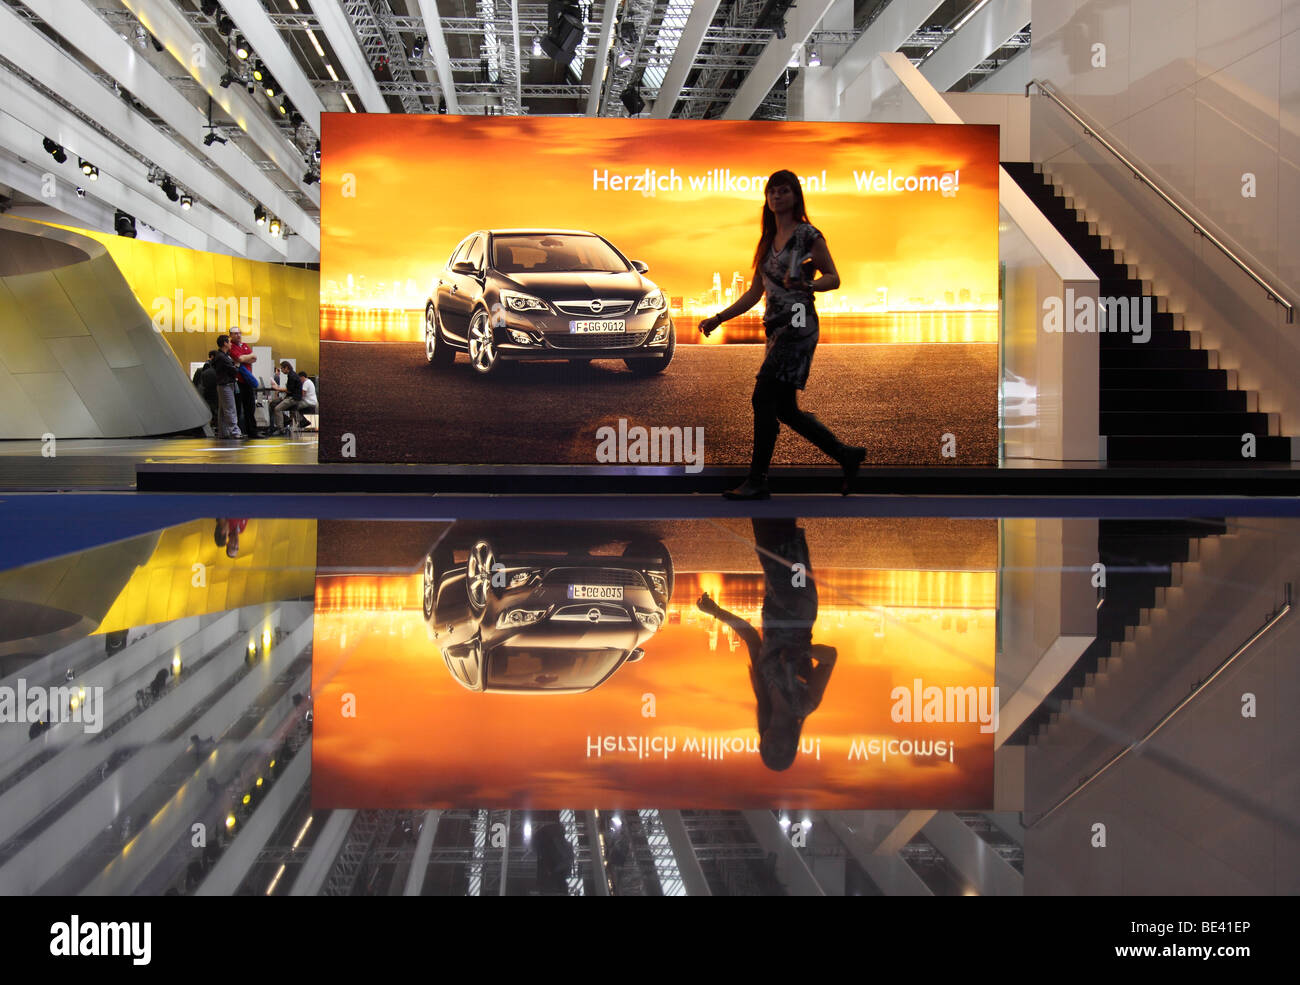 63th International Motor Show ( IAA ): Advert of the car manufacturer Opel welcomes the visitors - Stock Image